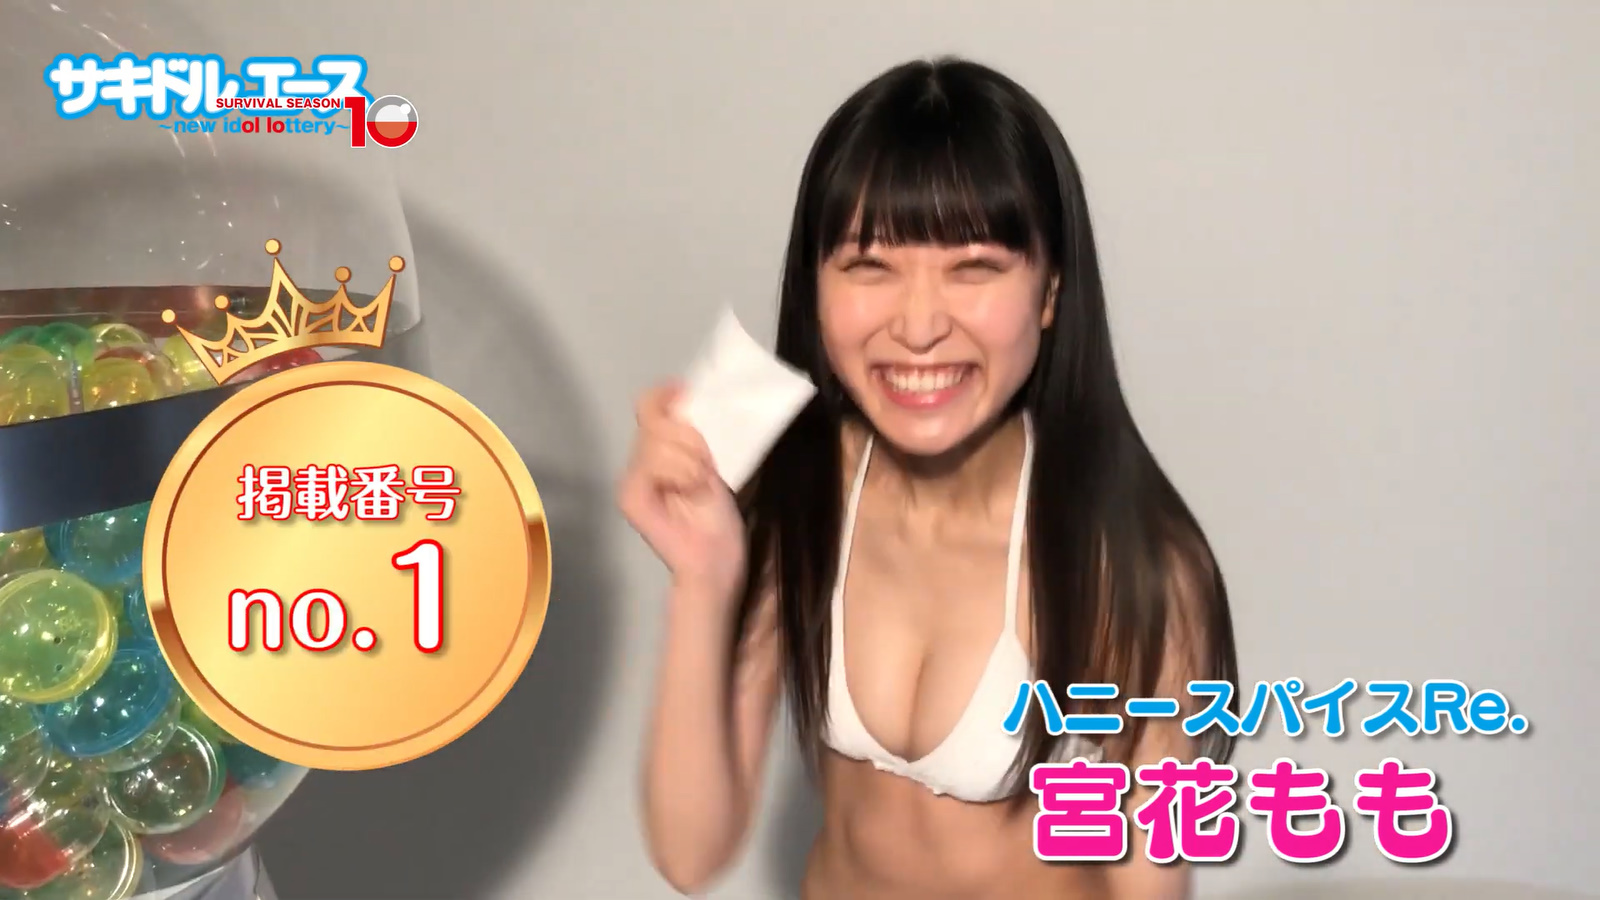 Sakidol Ace 10 Introduction Movie Capture of Swimsuit023